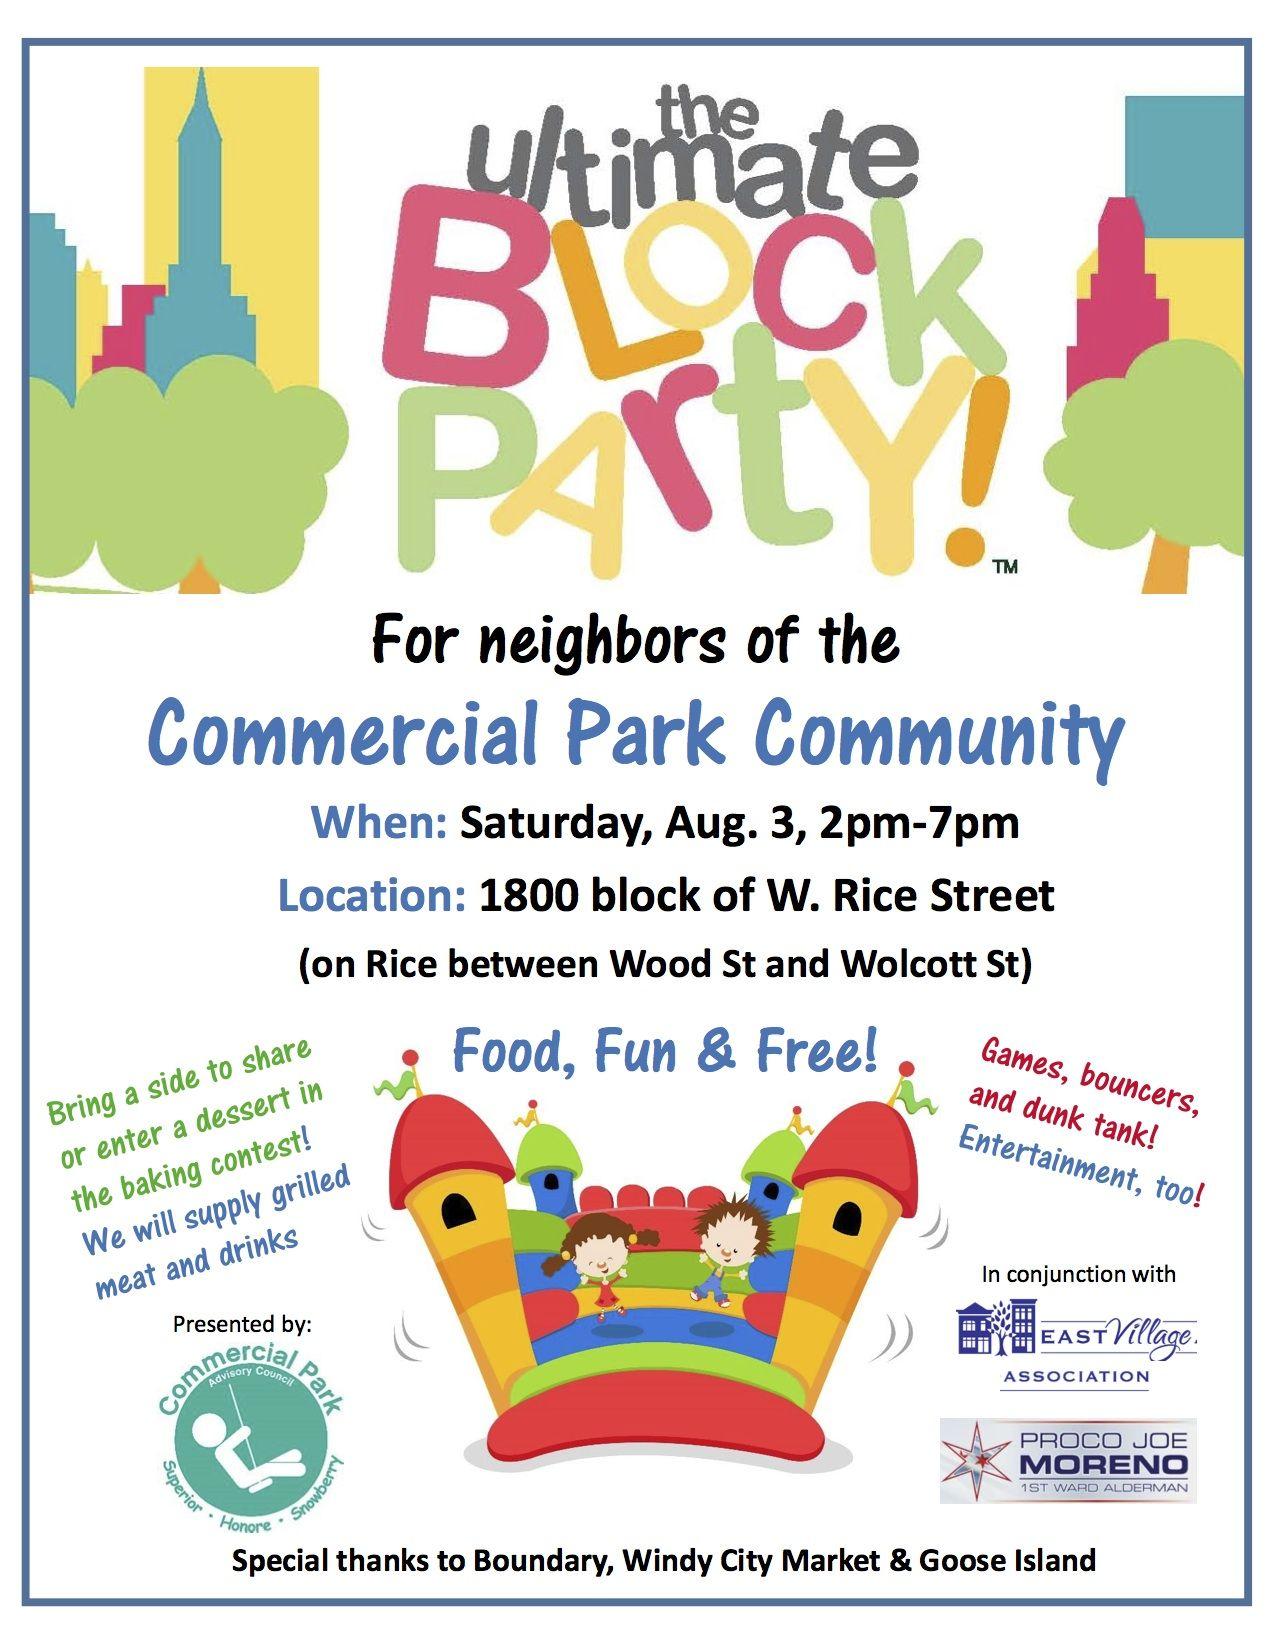 free block party clip art.